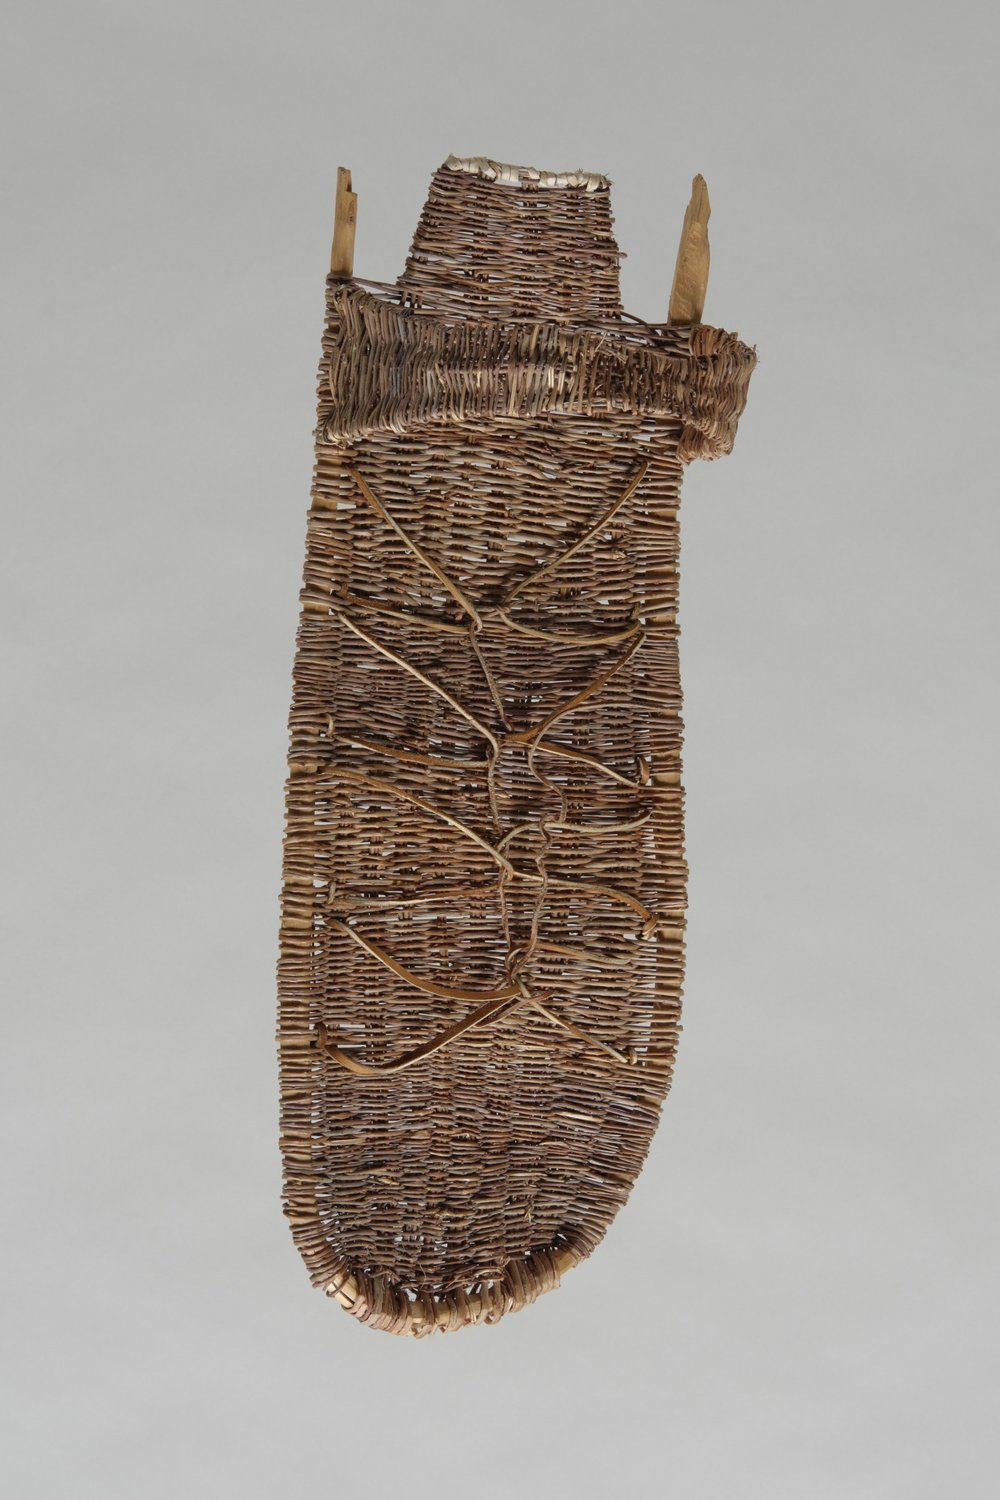 Leonora Quanimptewa, American (Hopi), 1930–1999, Southwest wicker cradleboard, 1970. Wood, sumac, and leather, 28 3/4 × 10 5/8 × 8 1/4 in. Hood Museum of Art, Dartmouth College: Gift of Professor Alfred Frank Whiting; 170.9.25465.